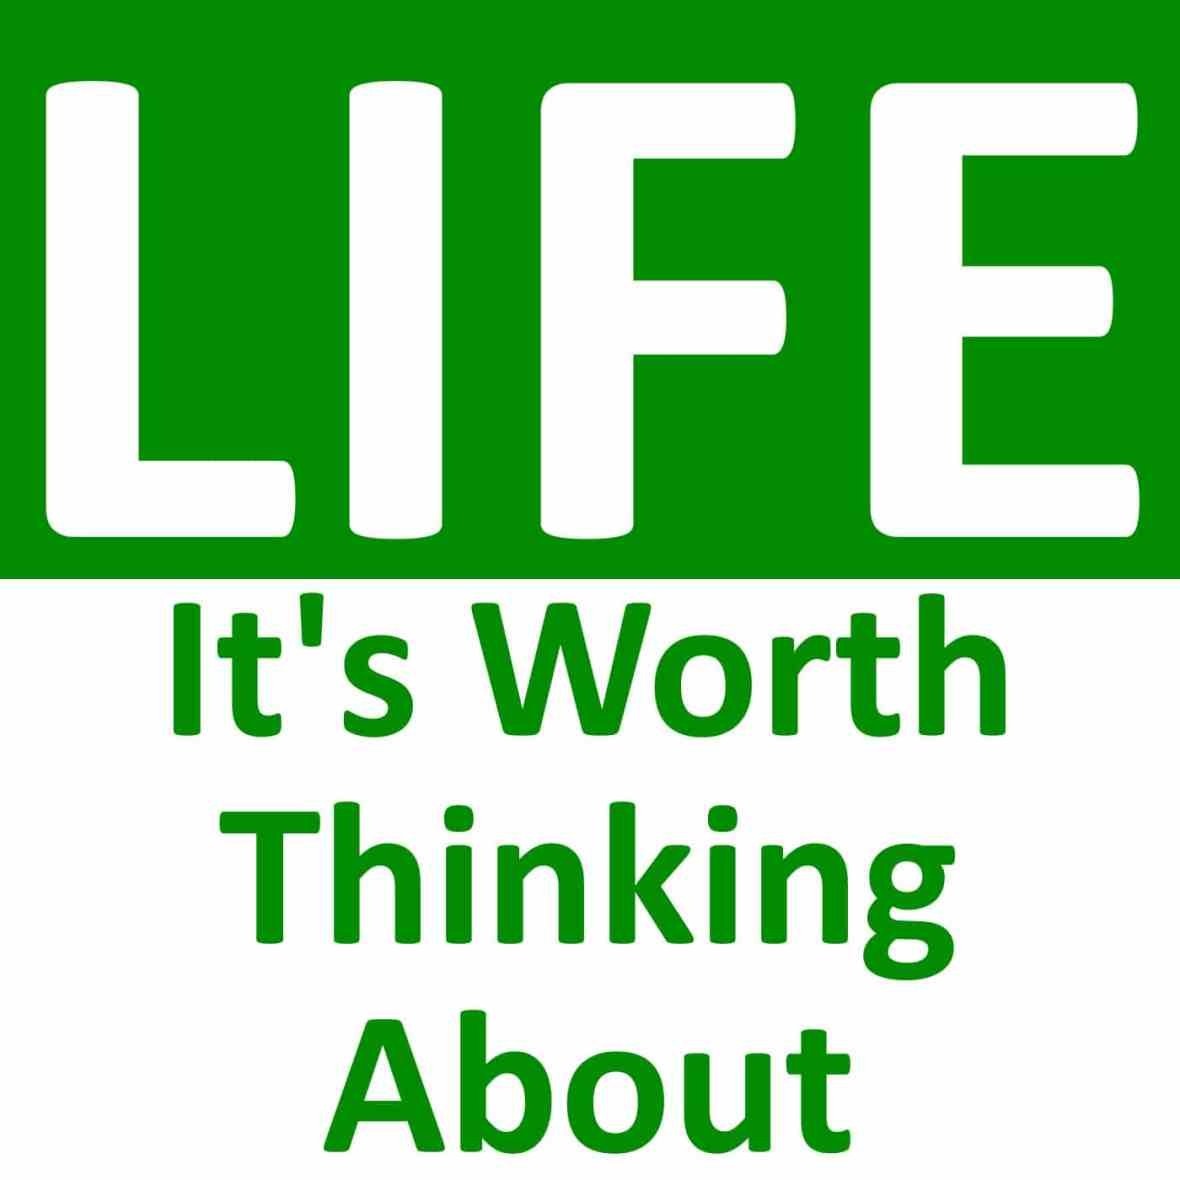 Life worth thinking about